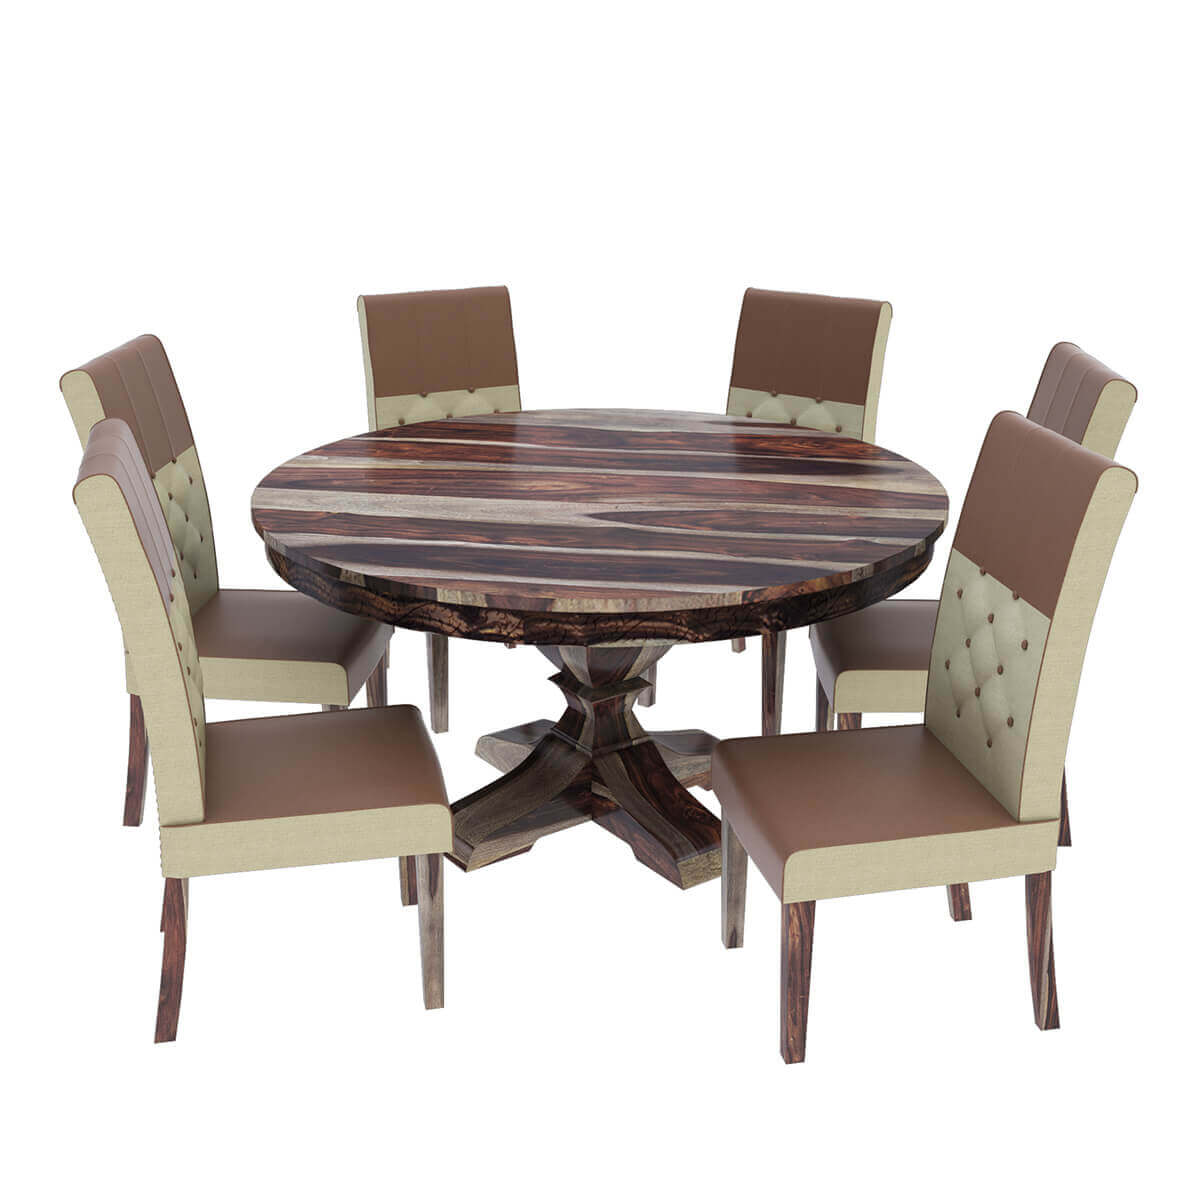 Wood Round Dining Table: Hosford Handcrafted Solid Wood Round Dining Table And 6